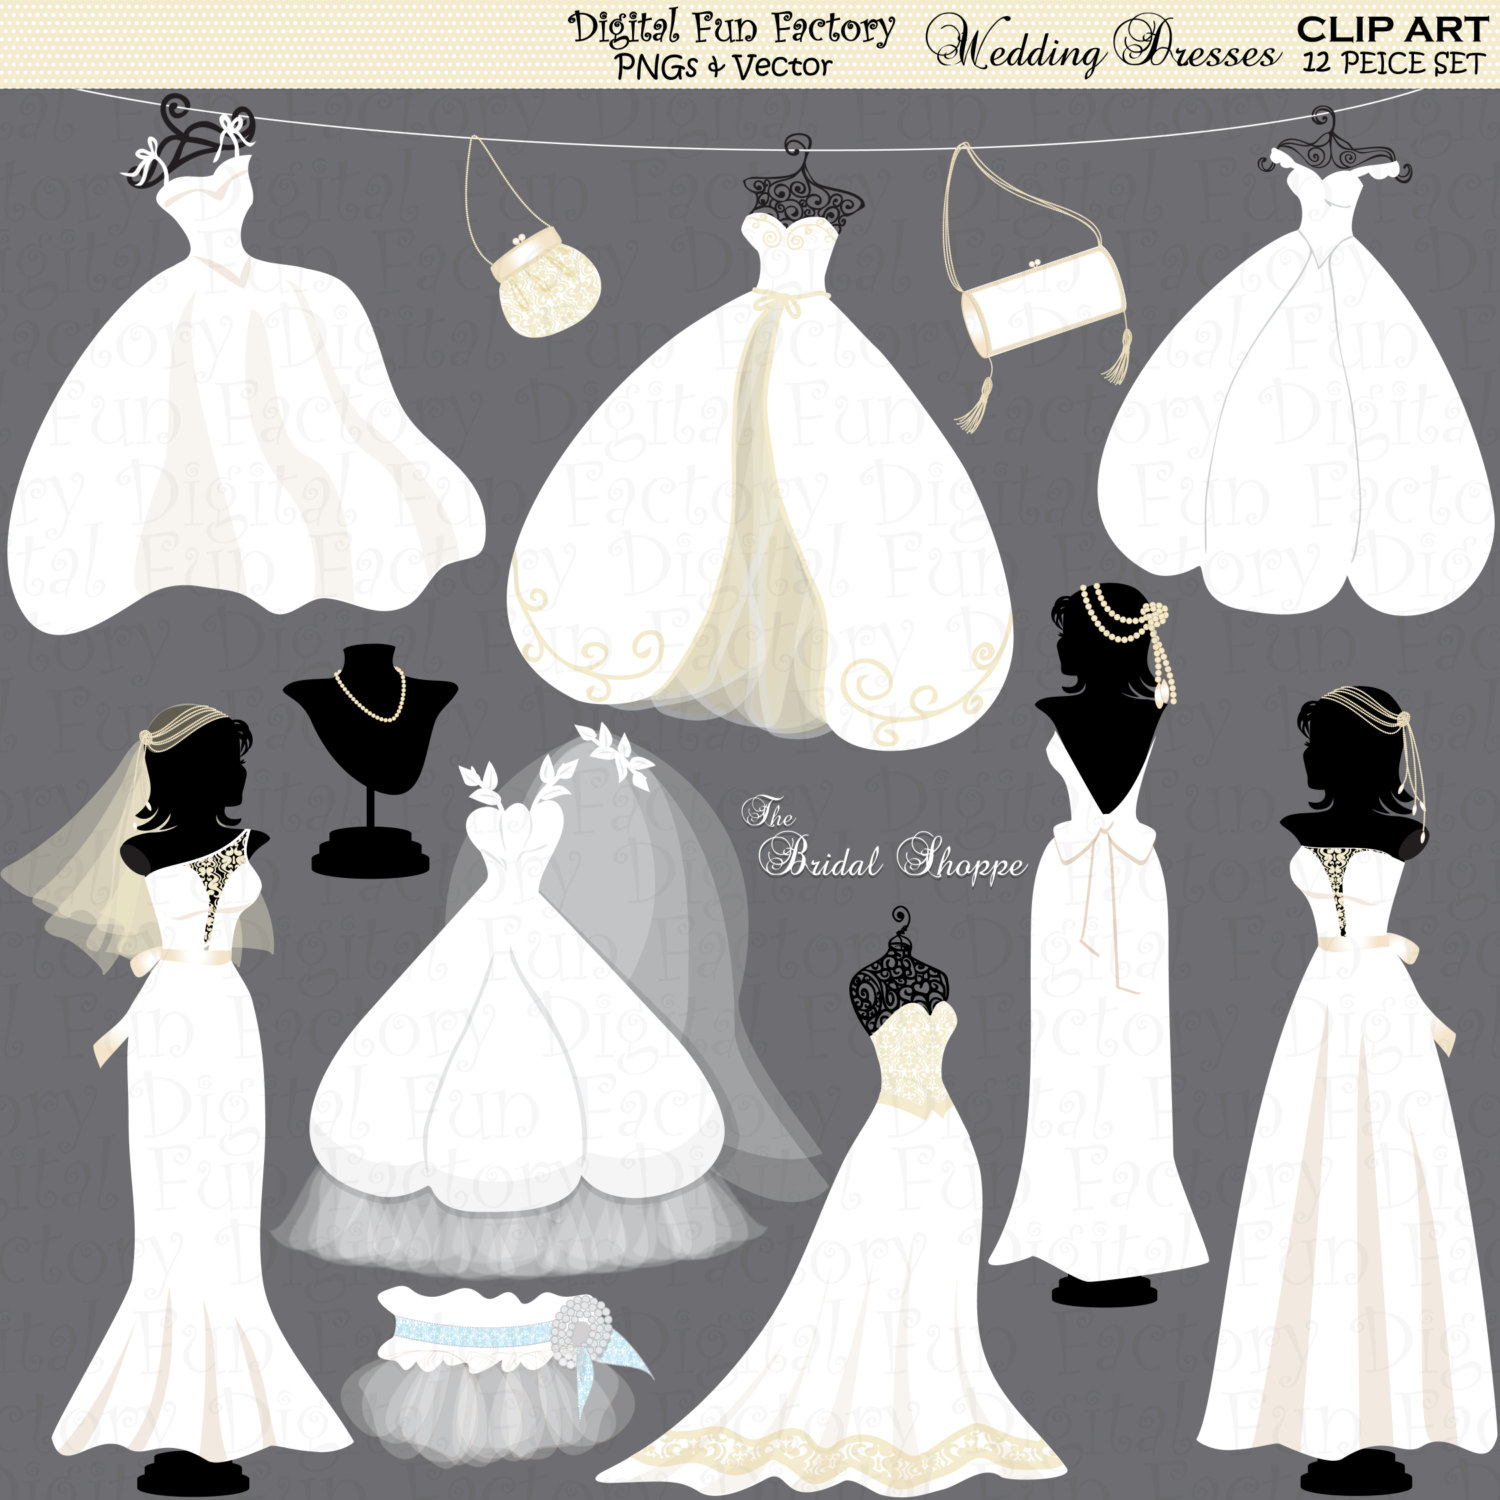 Bride clipart bridesmaid dress #8